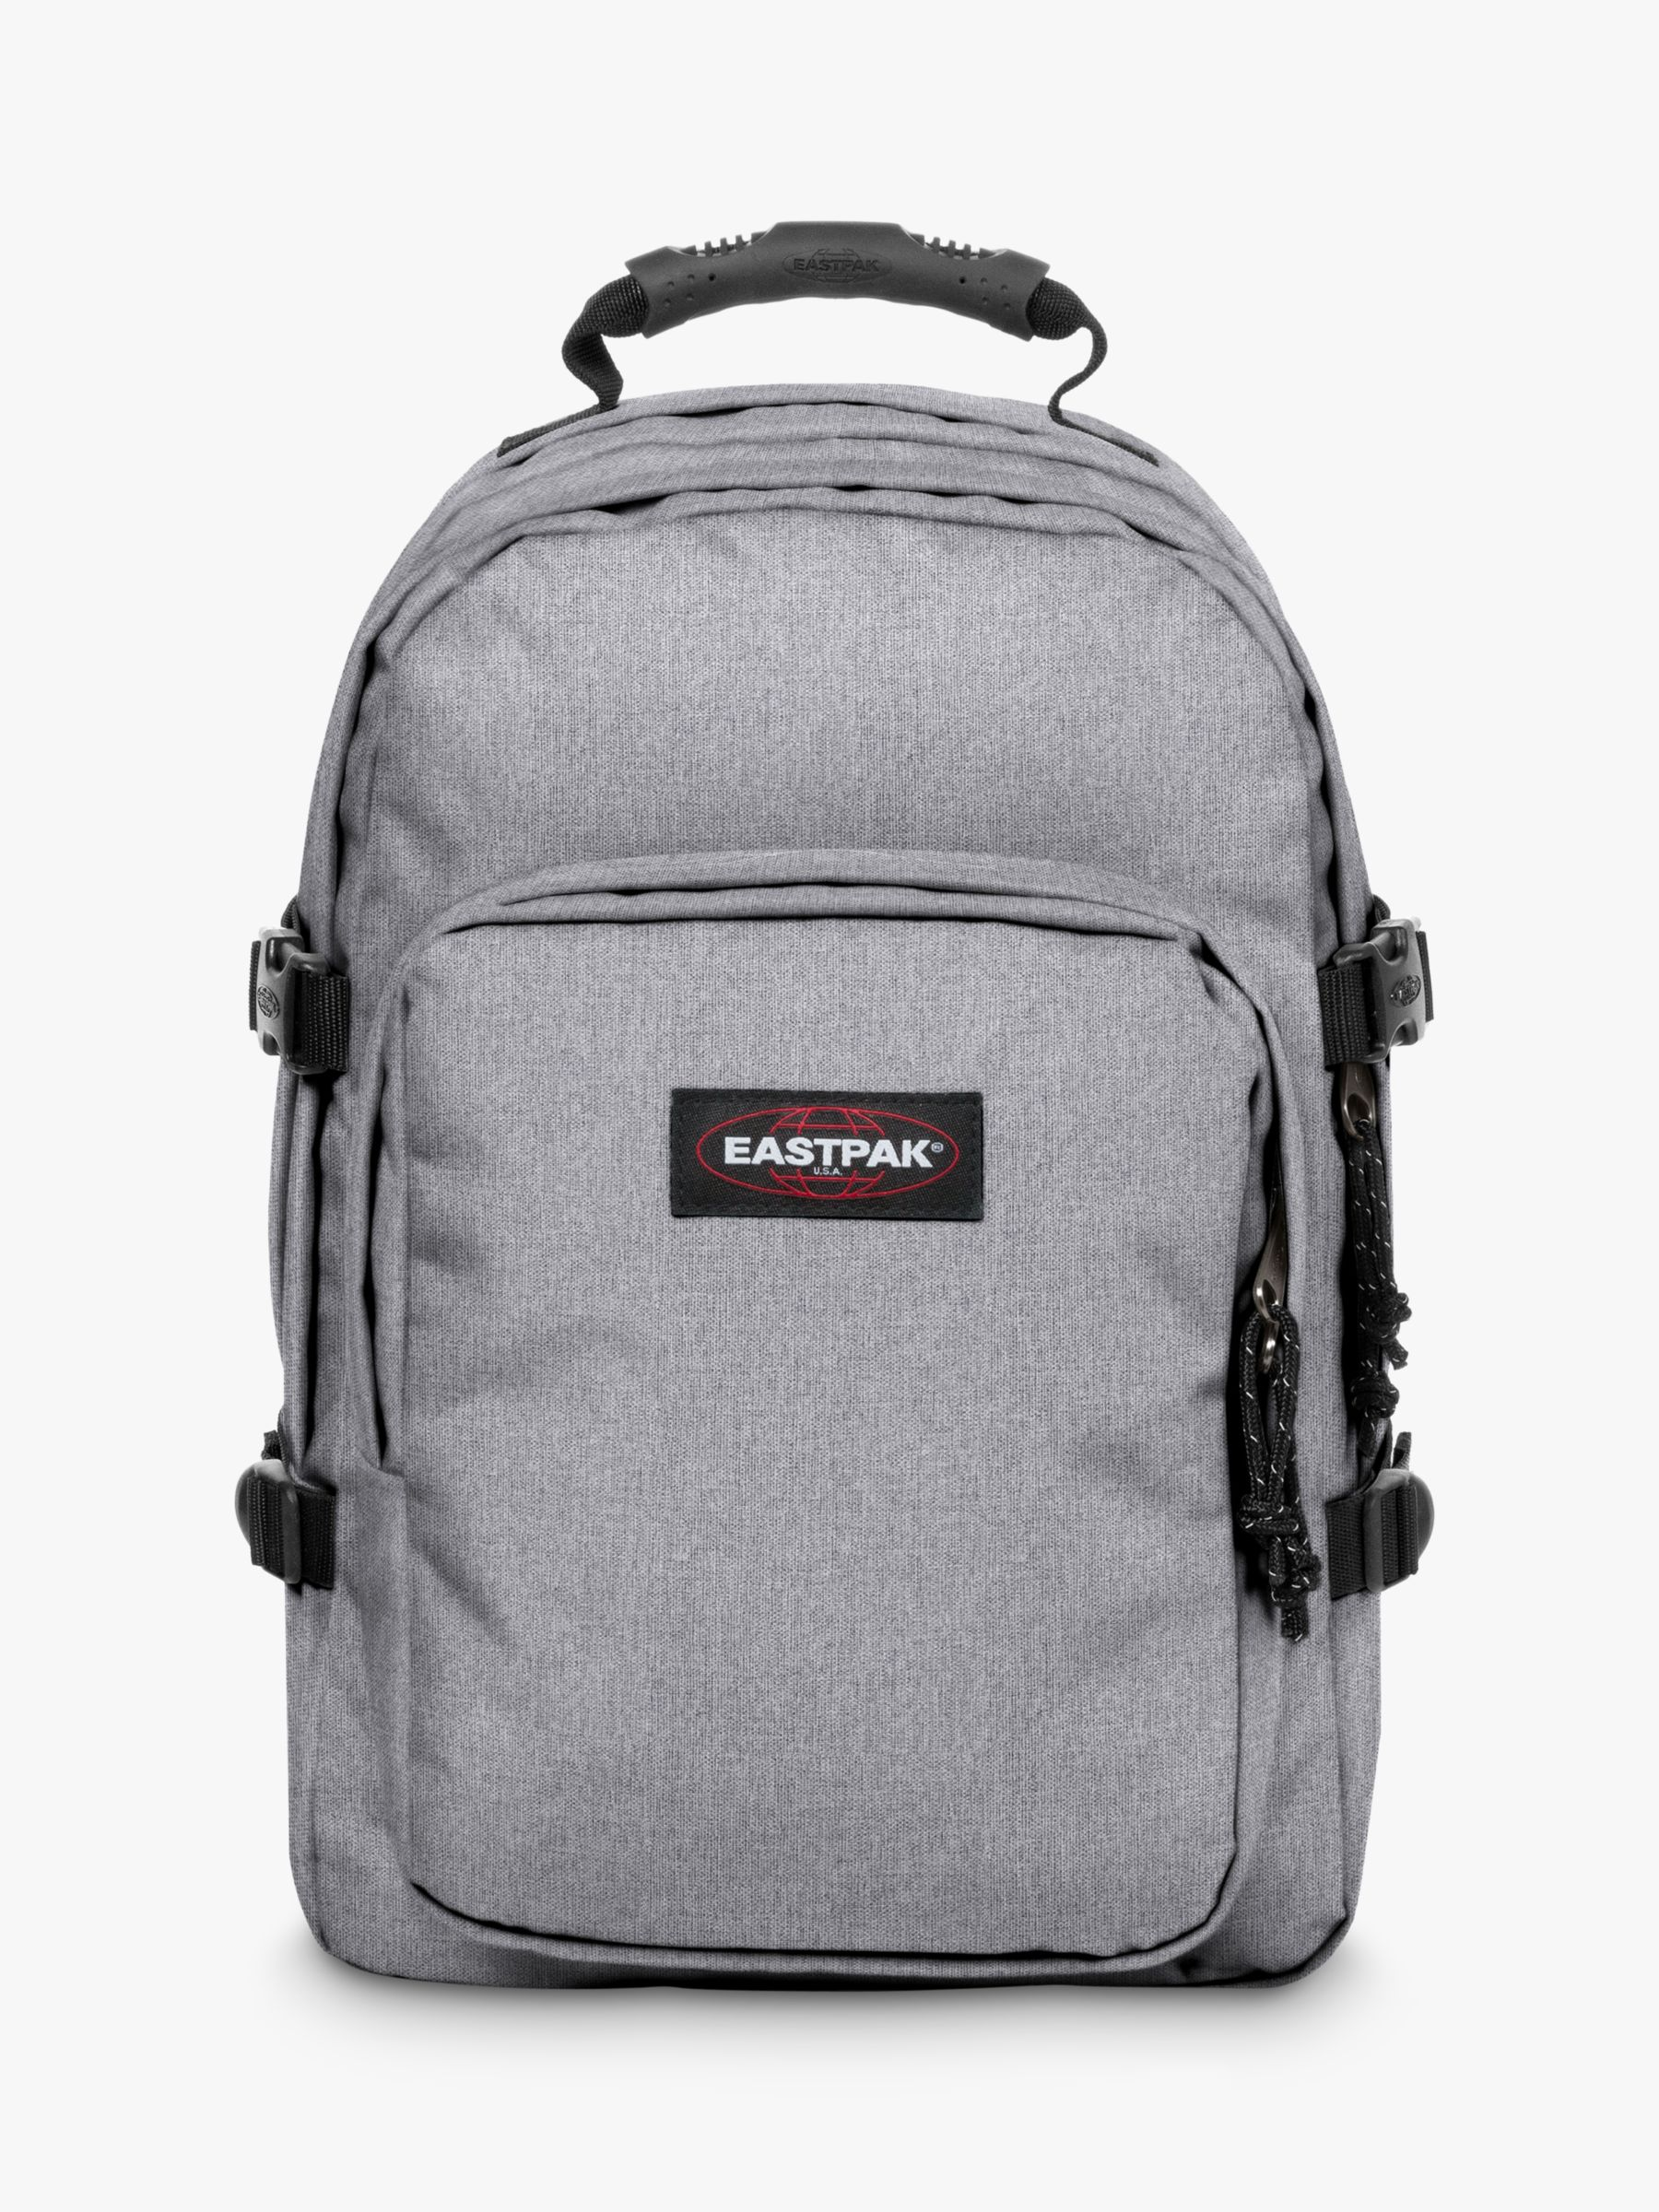 Eastpak Eastpak Provider Laptop Backpack, Sunday Grey